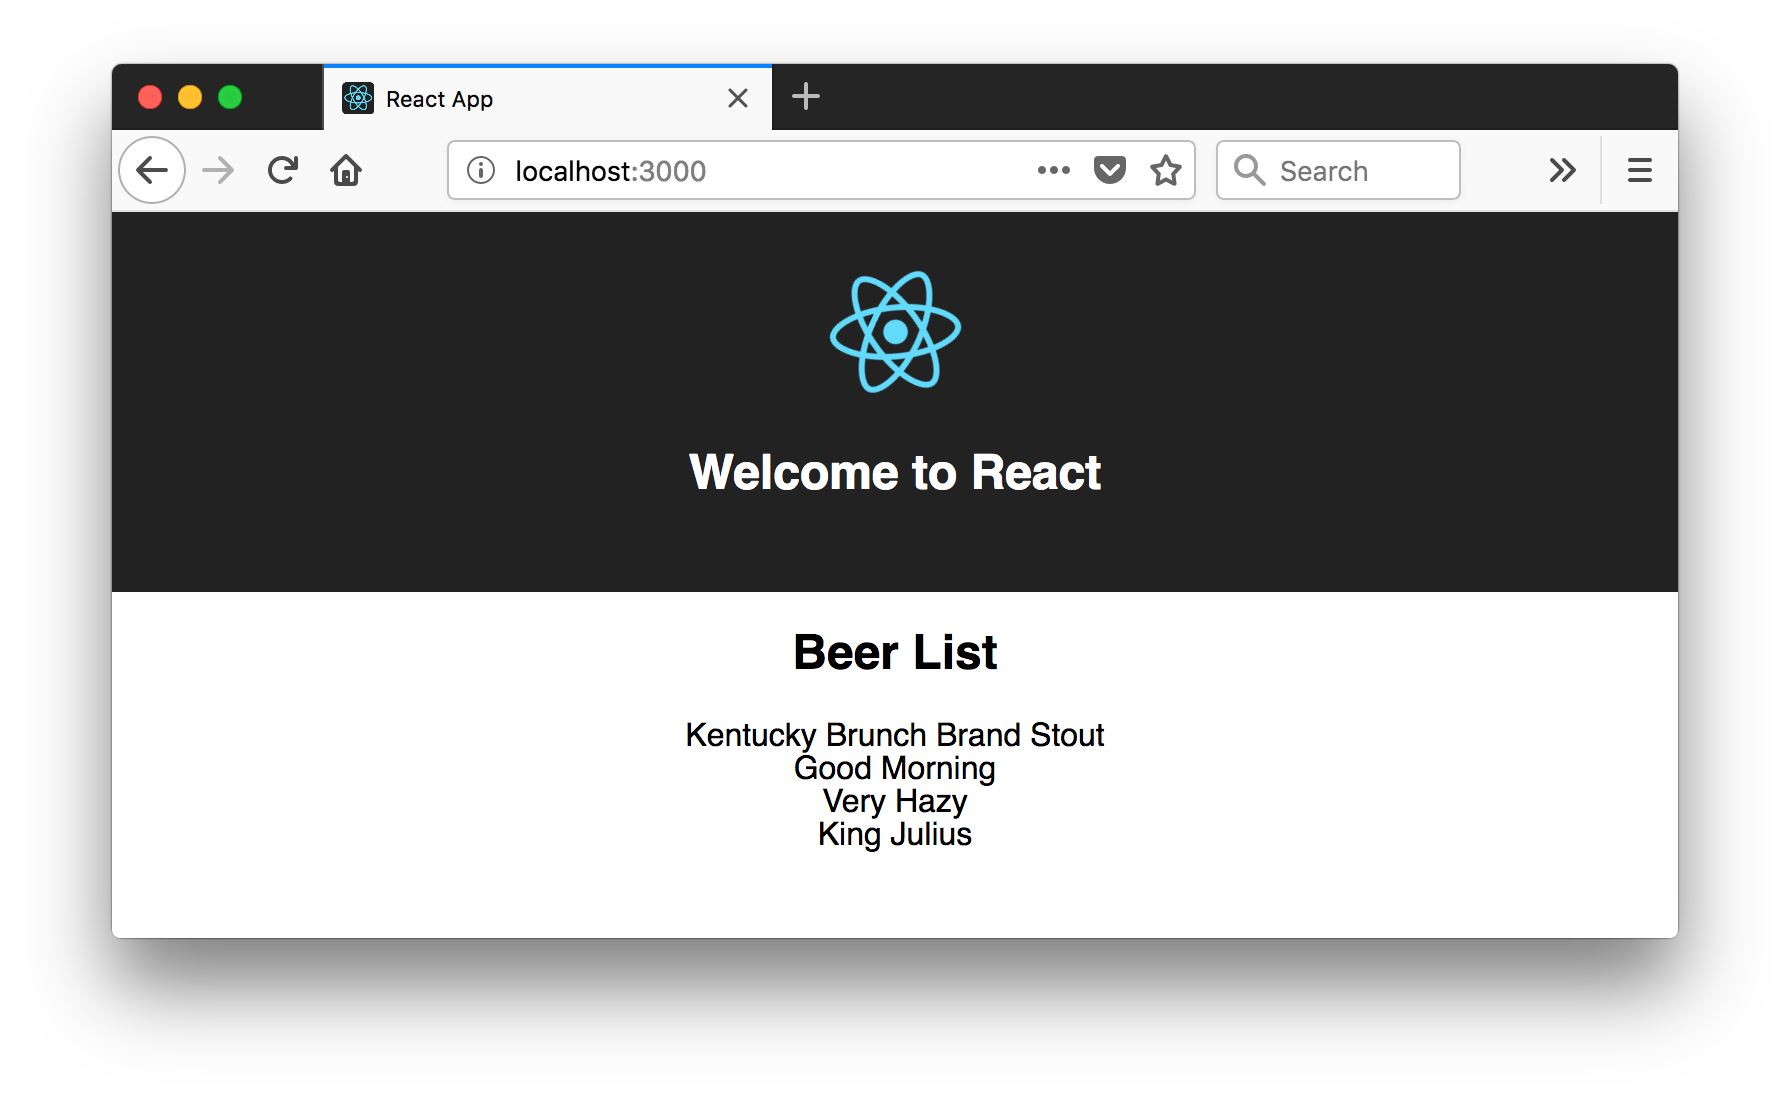 Beer List in React